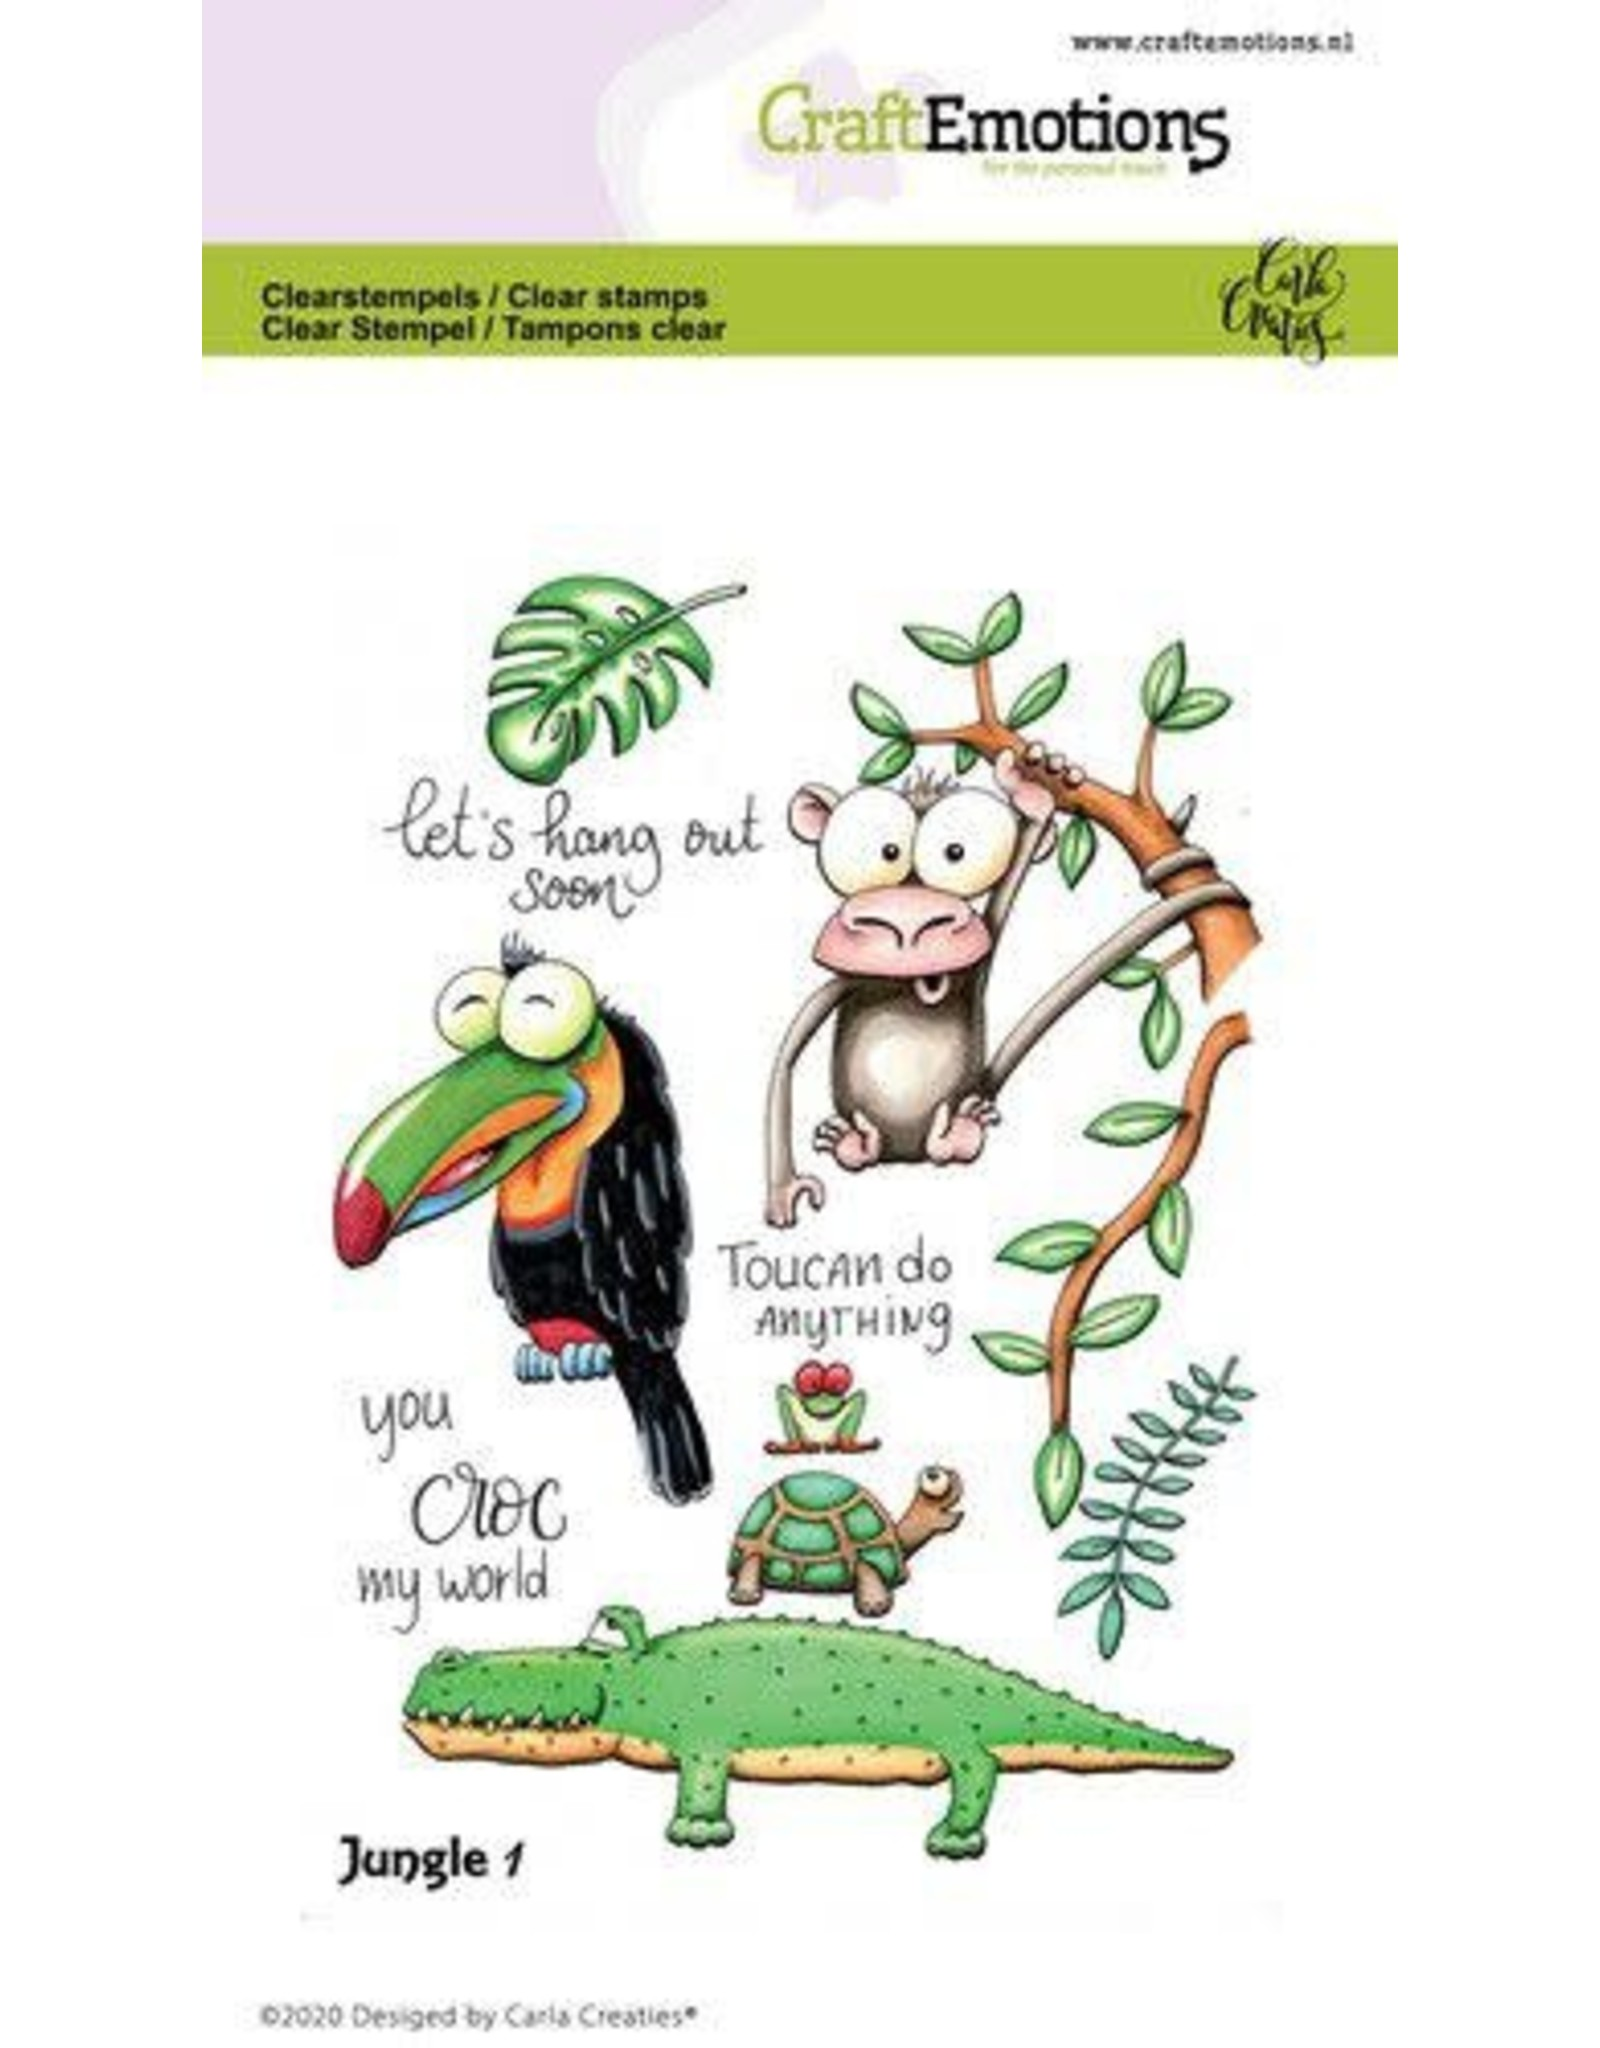 Craft Emotions CraftEmotions clearstamps A6 - Jungle 1 Carla Creaties